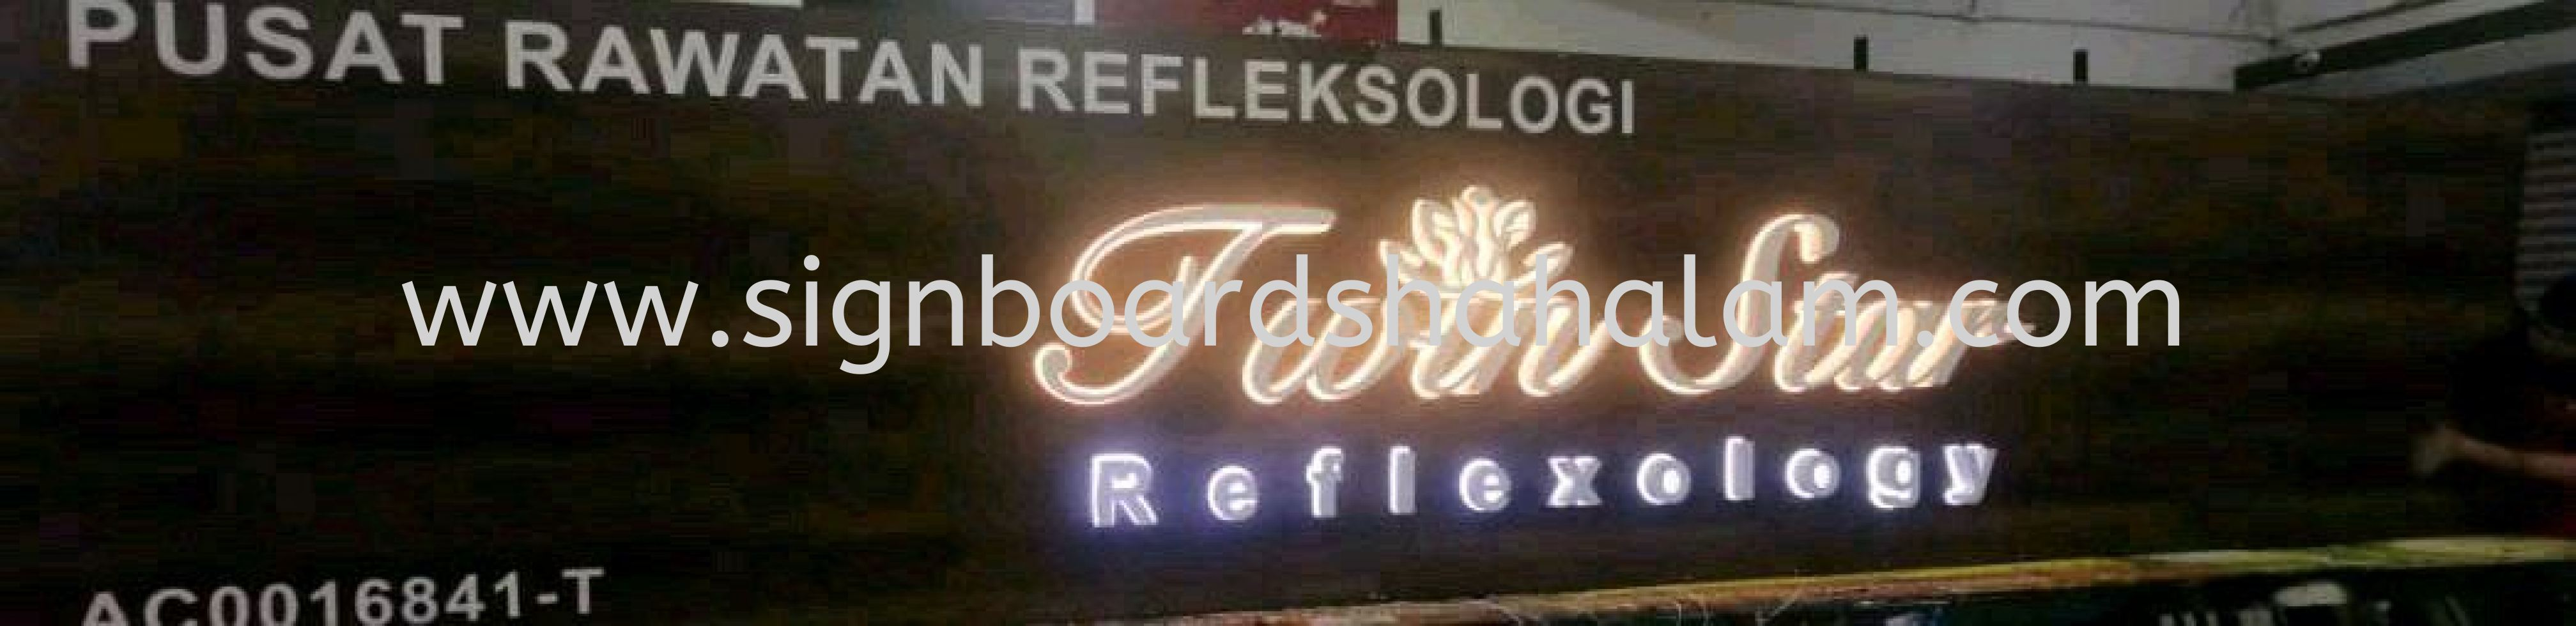 Twin Star Reflexology Signage, Signboard